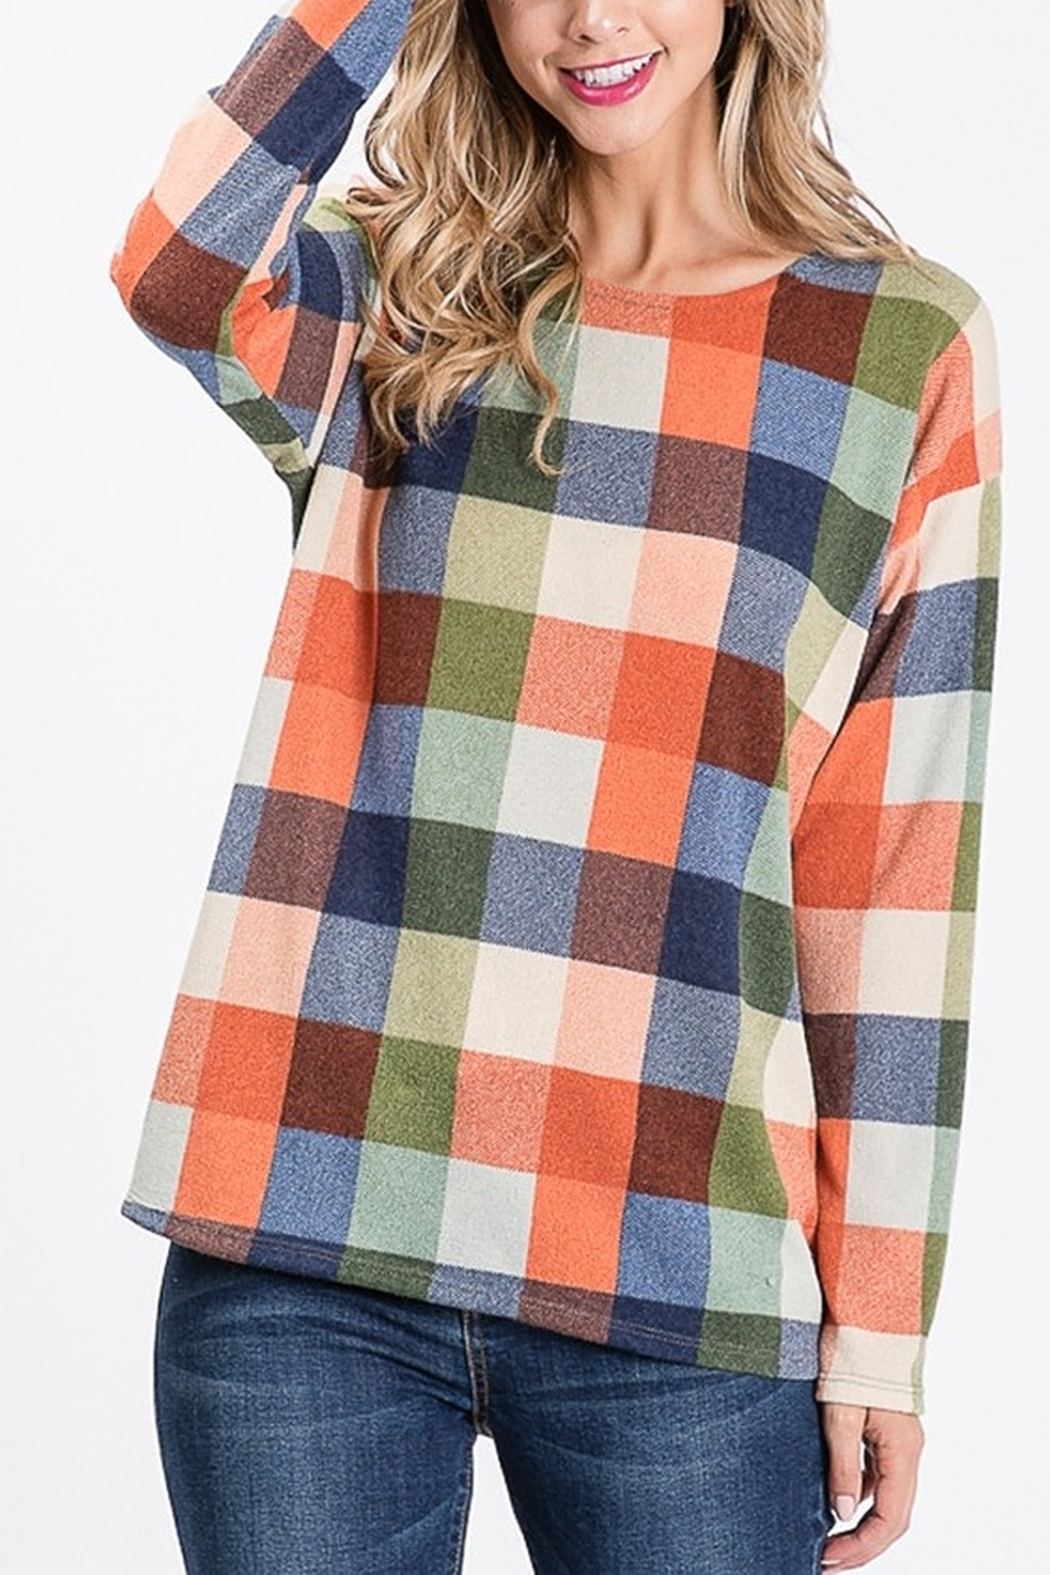 Lyn -Maree's Open Back Plaid Top - Front Full Image